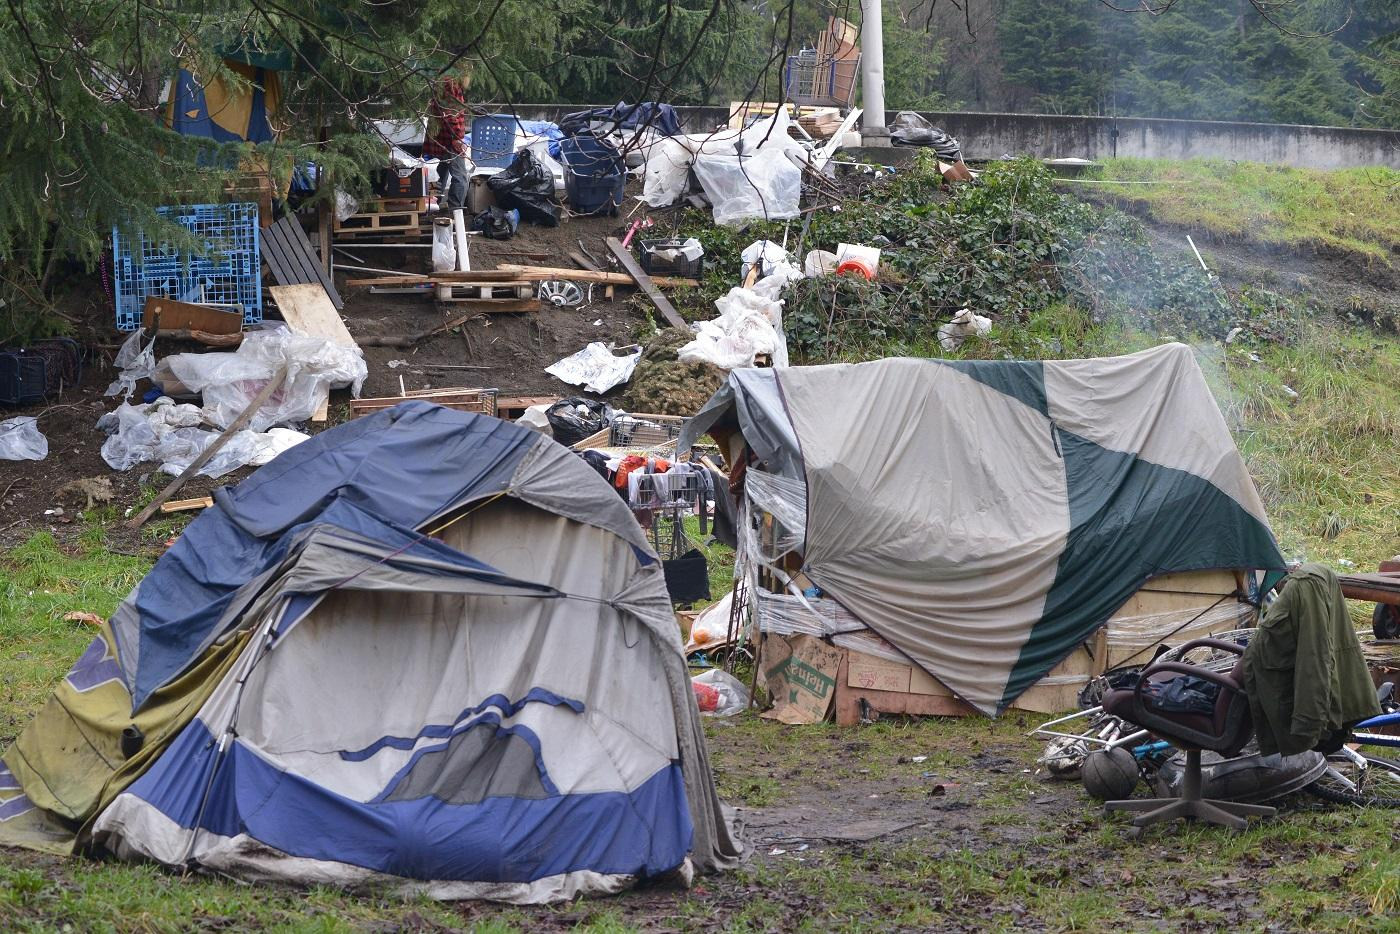 PHOTOS: This Is Seattle's Notorious 'Jungle' | KUOW News ...